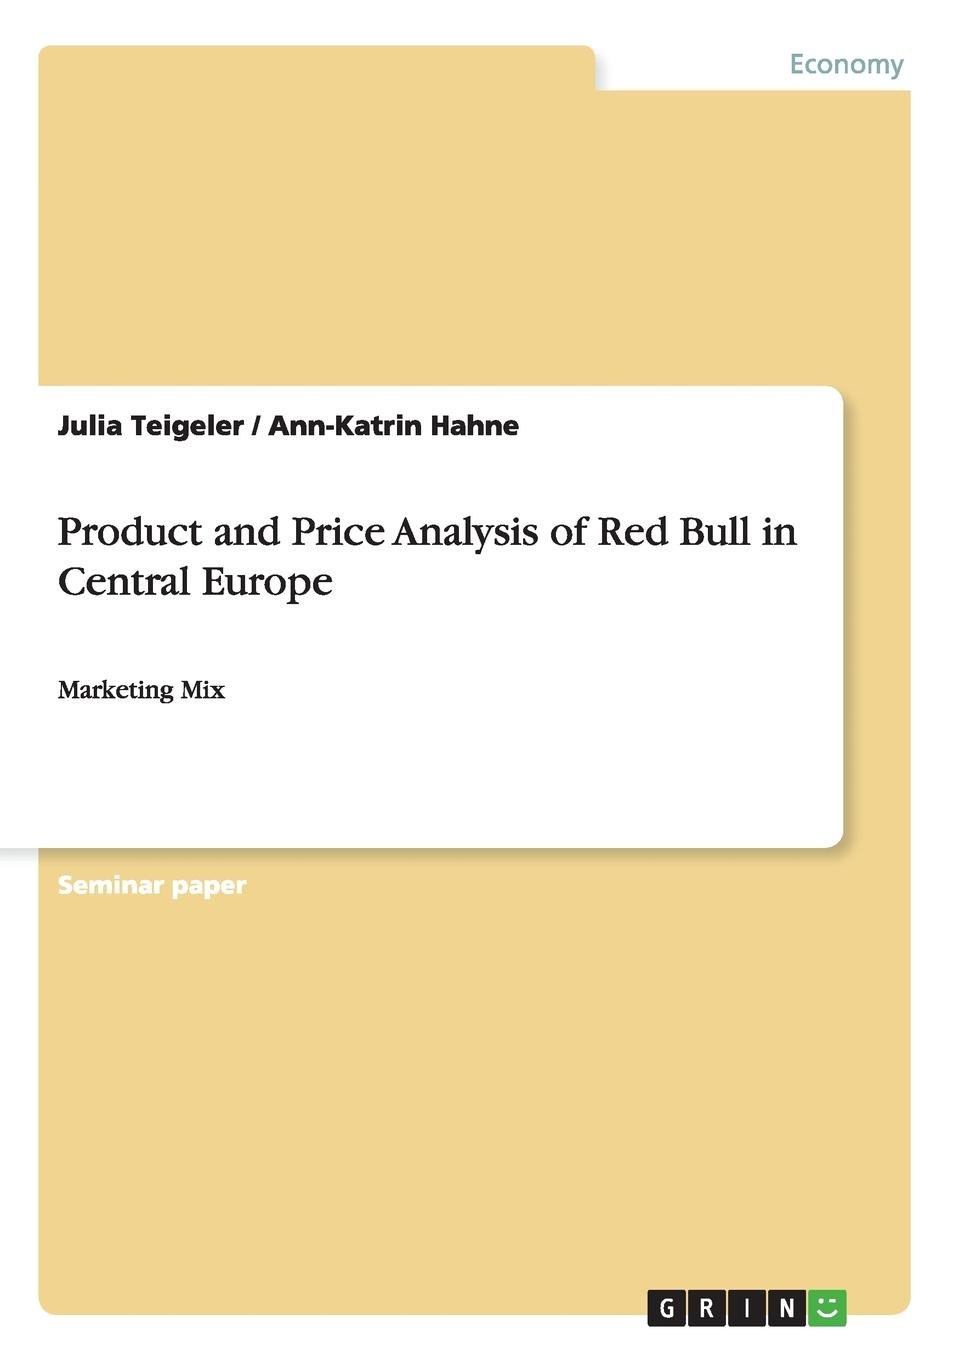 Julia Teigeler, Ann-Katrin Hahne Product and Price Analysis of Red Bull in Central Europe demystifying learning traps in a new product innovation process